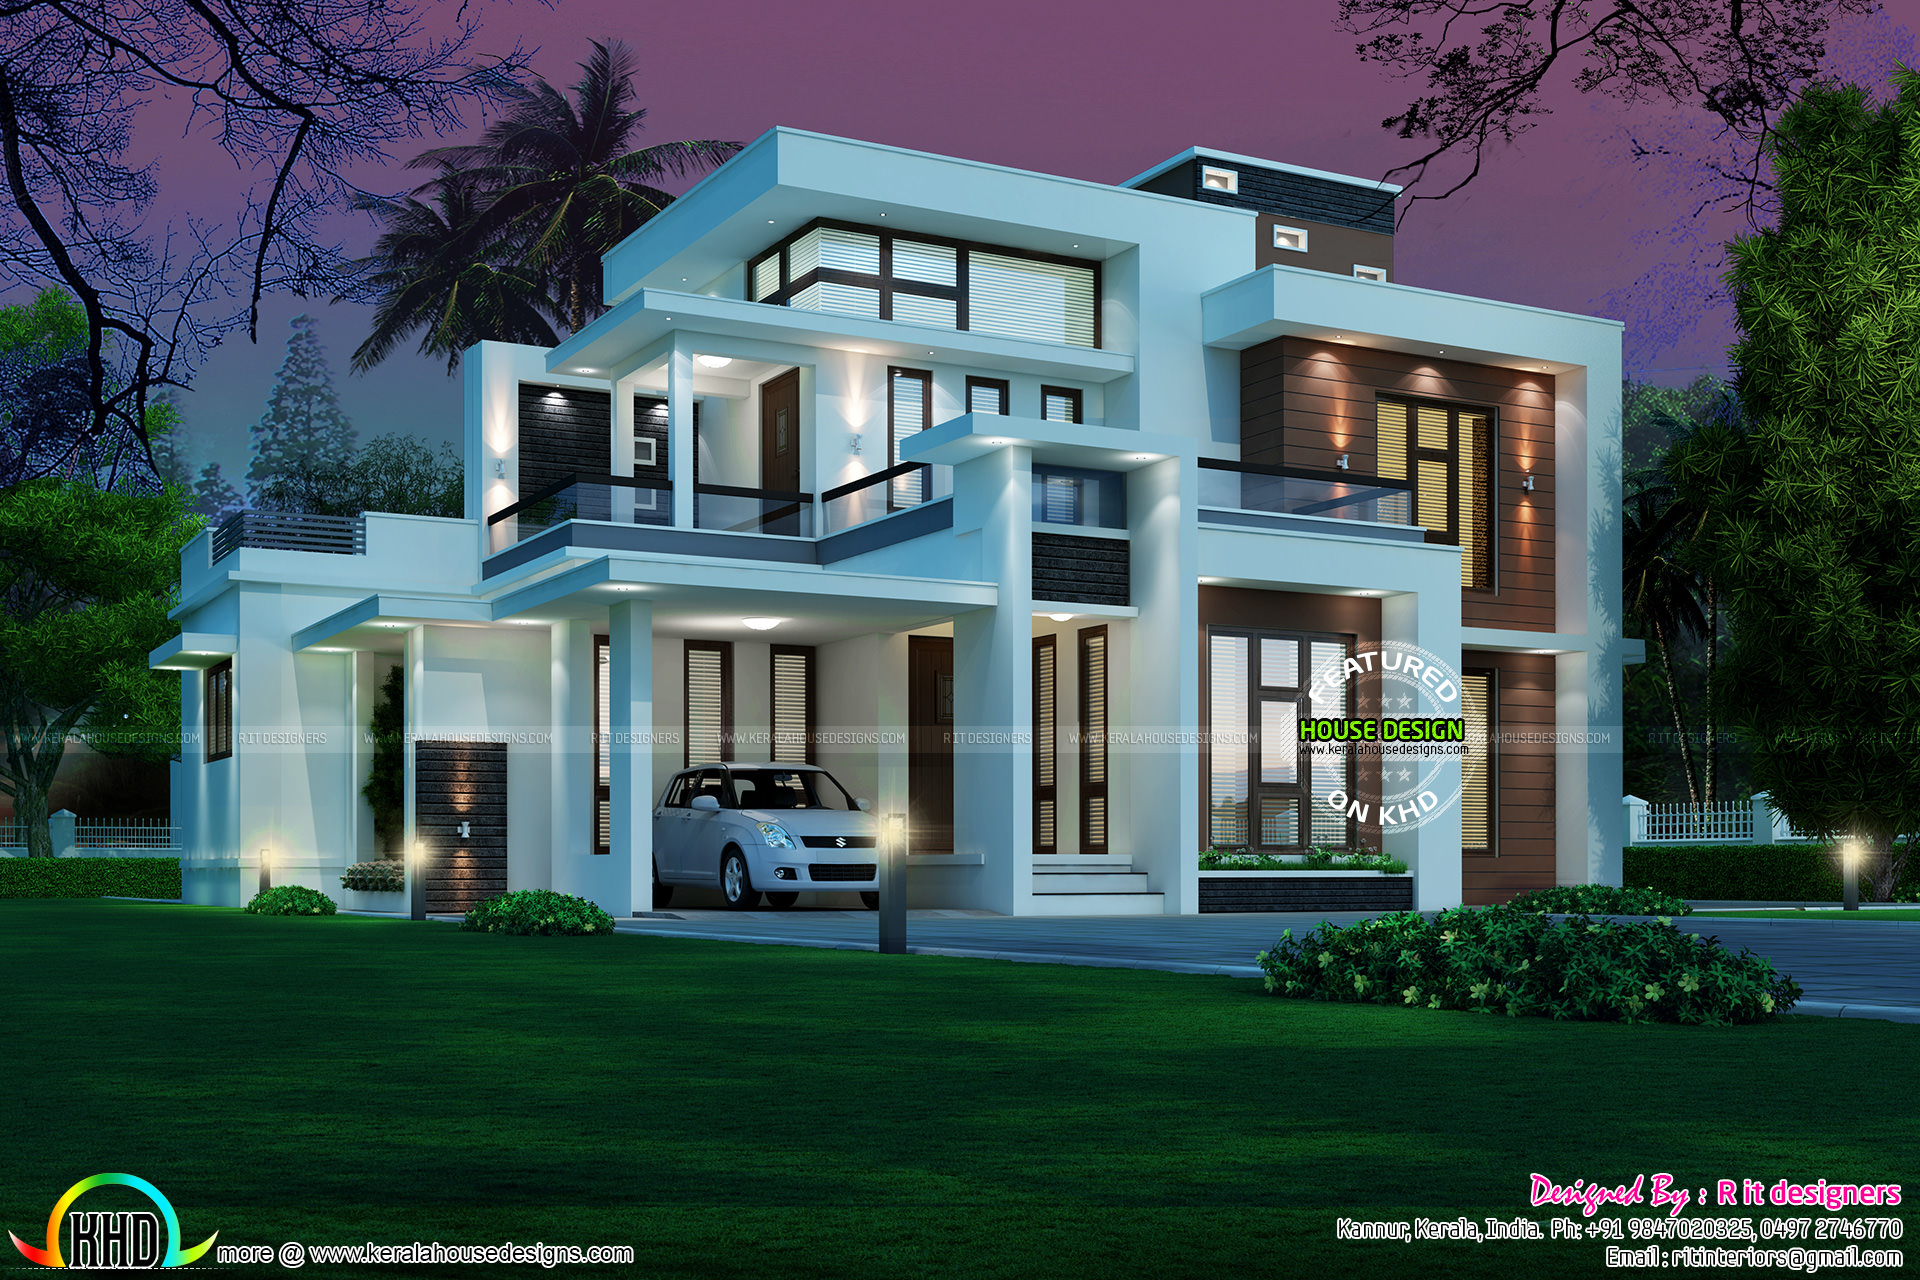 Box Model Contemporary 2215 Sq Ft ₹45 Lakhs Kerala Home